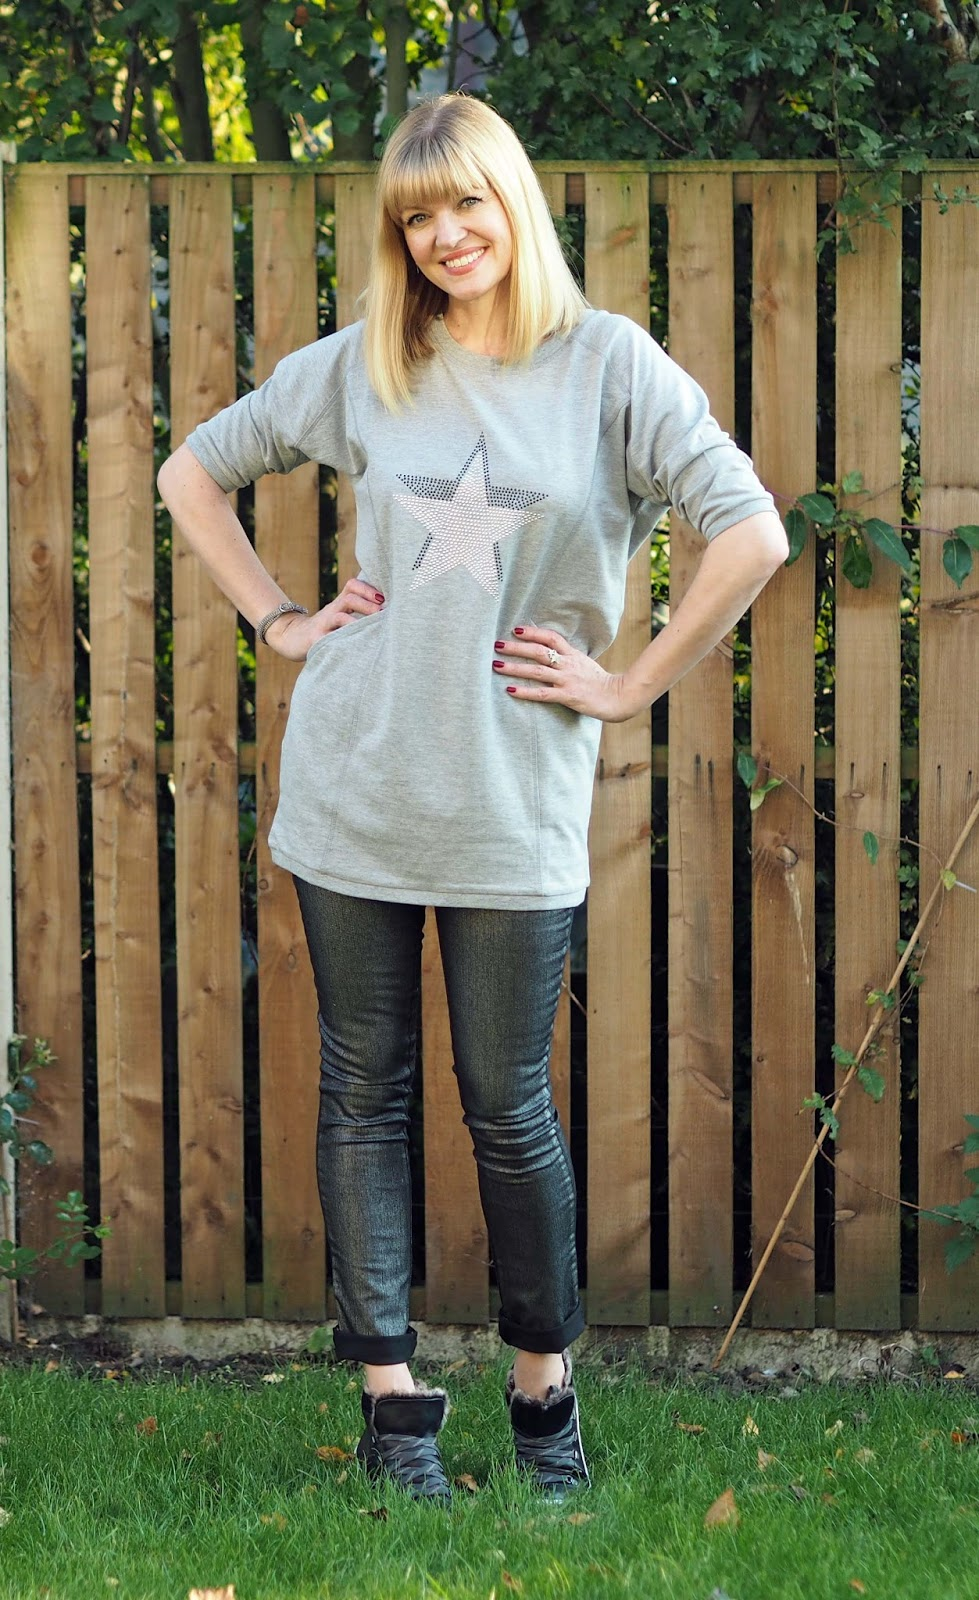 Longline star motif sweatshirt, silver slim leg metallic jeans, high-top black leather trainers, over 40